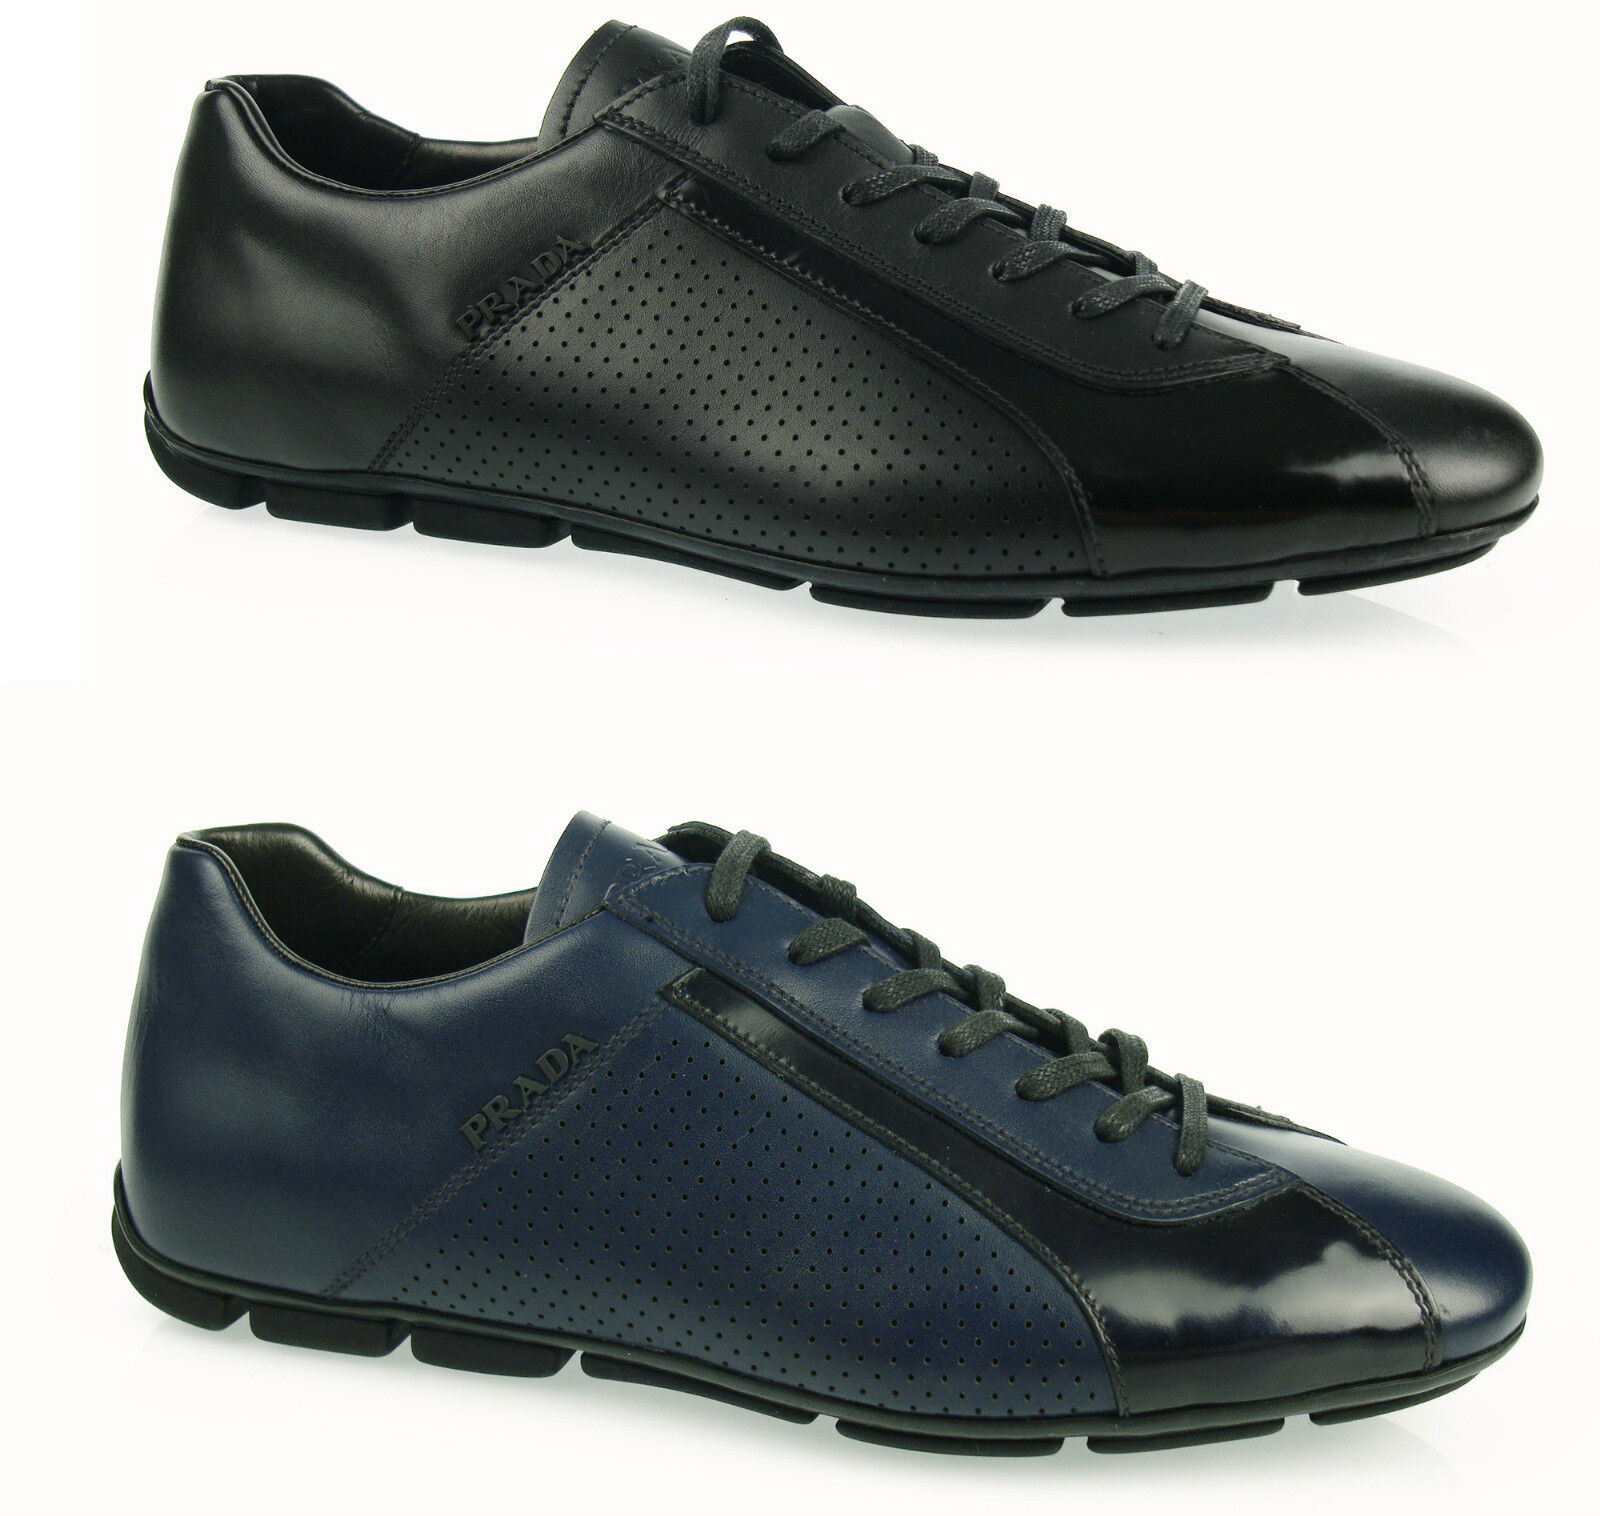 PRADA sneakers driver lace  MEN'S SHOES herrenshuhe Cs16 100%AUT